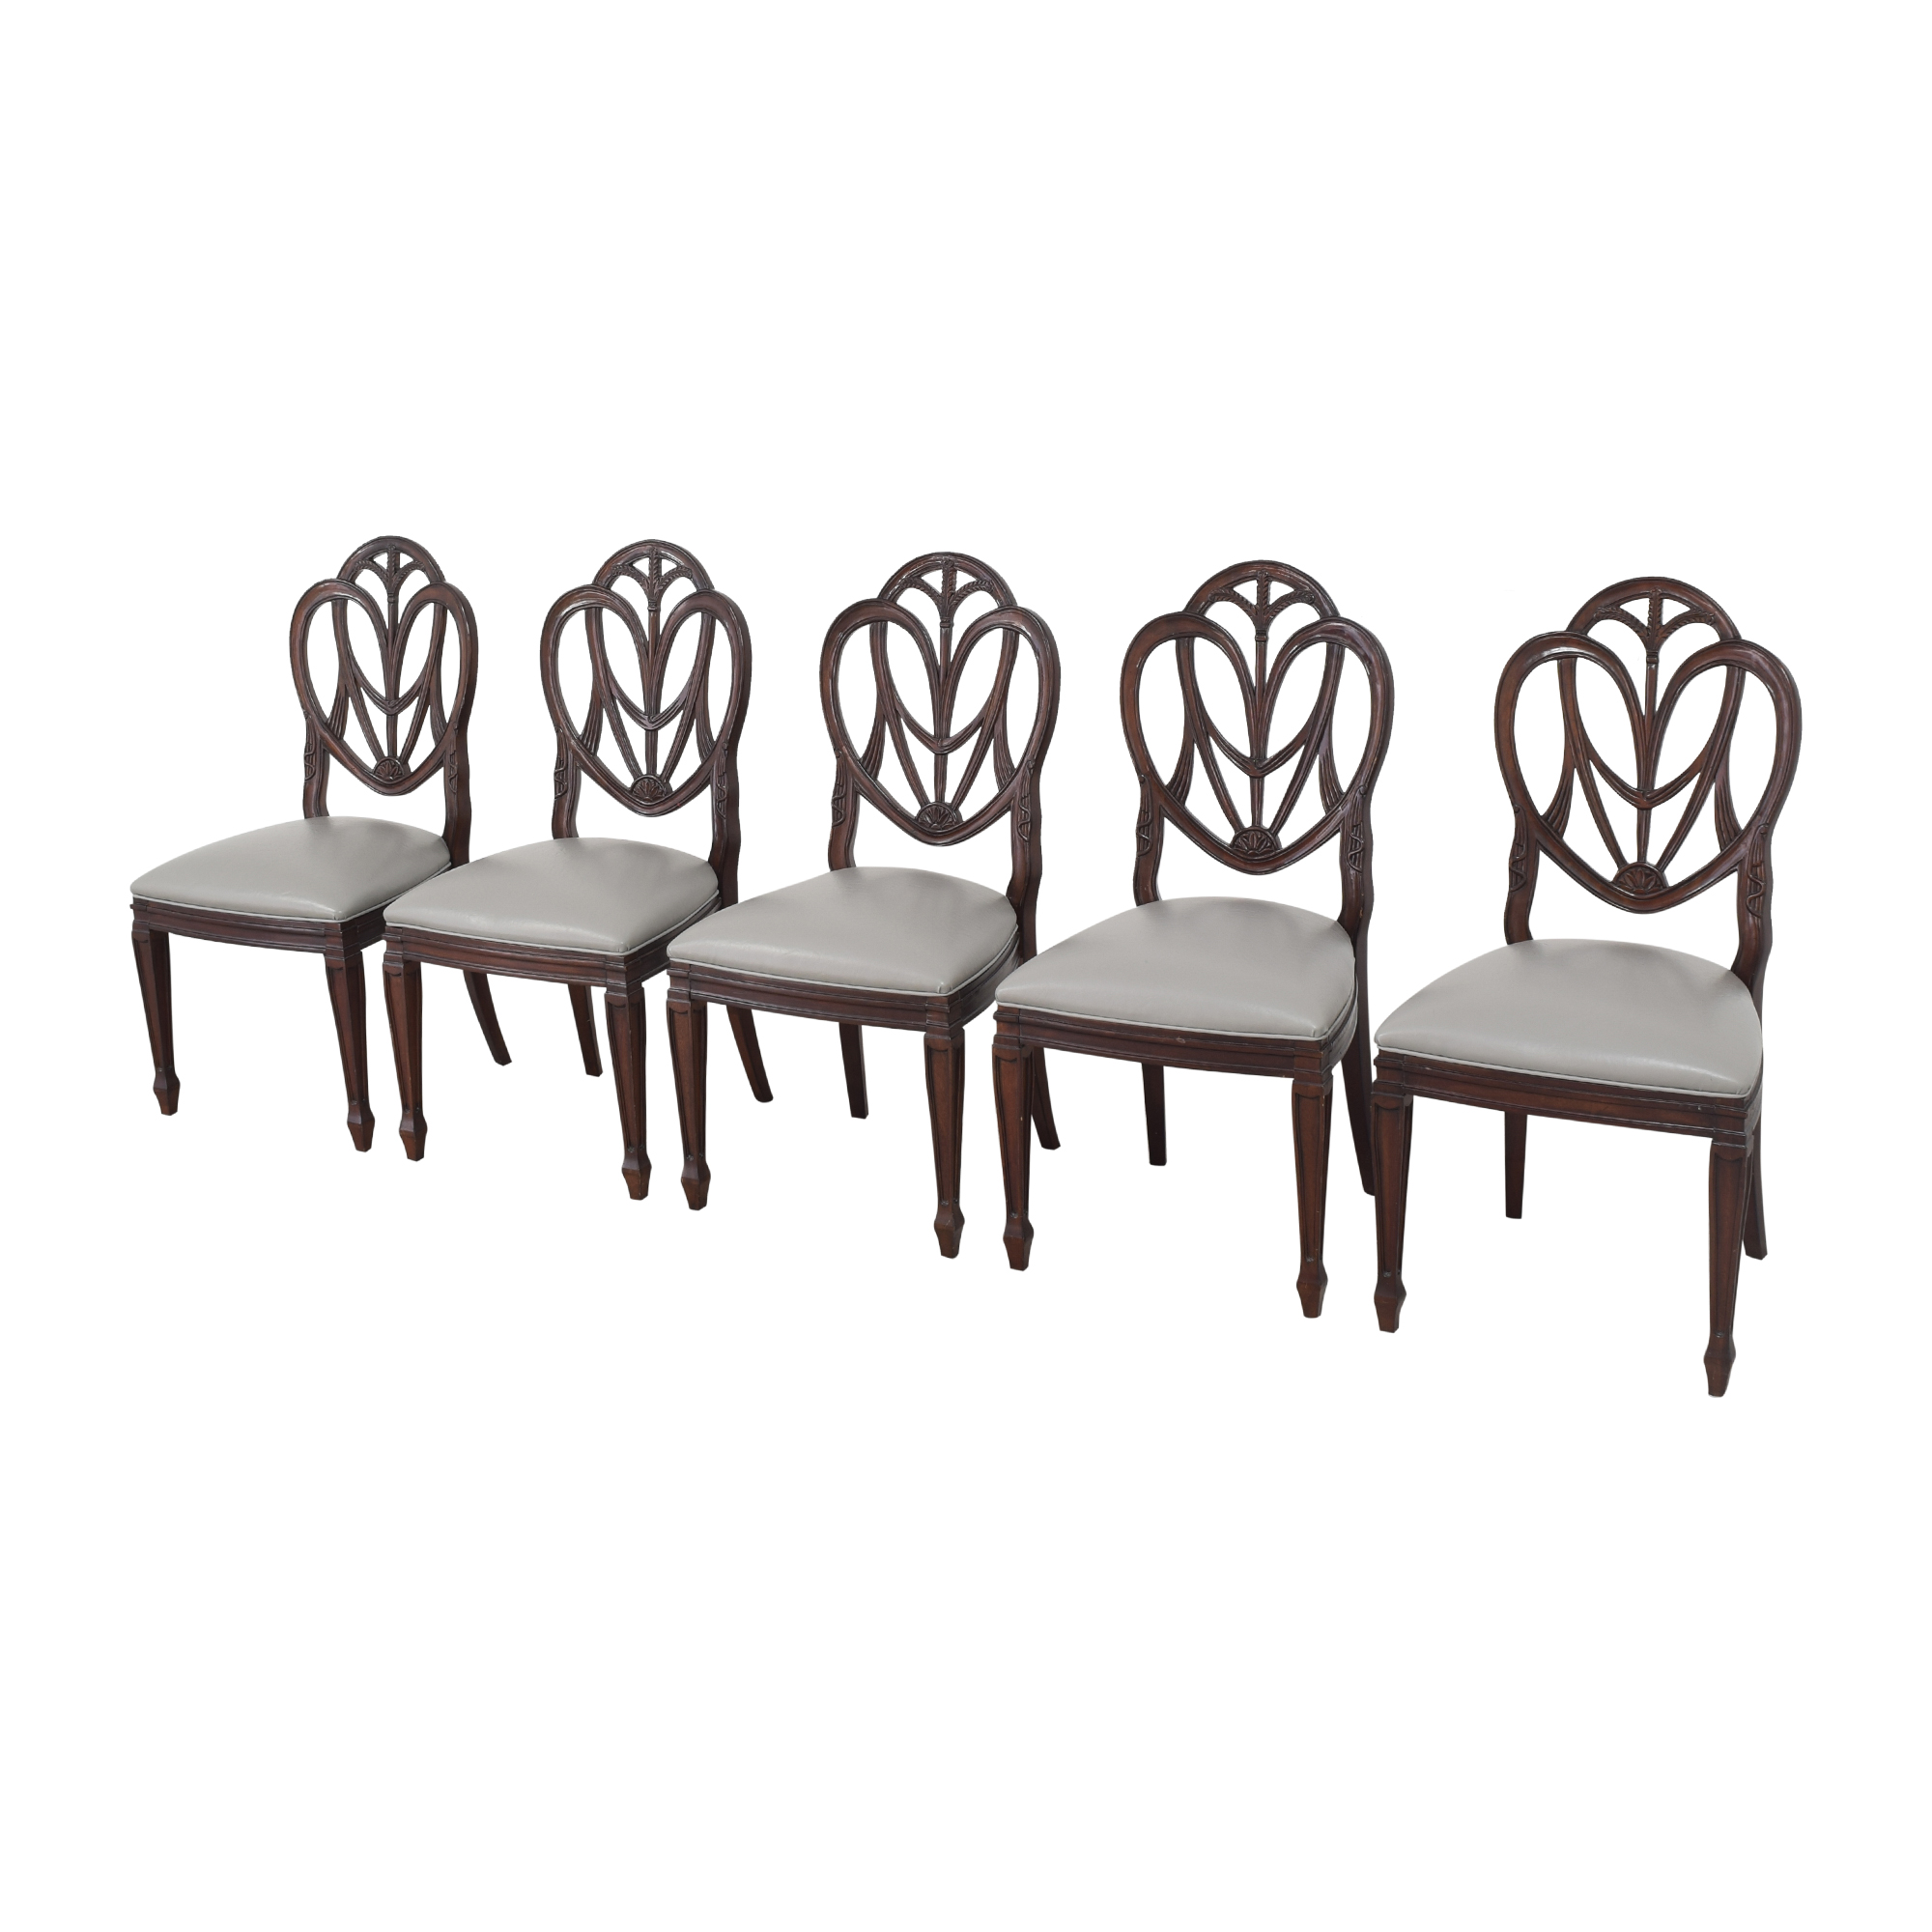 Drexel Heritage Drexel Heritage British Accents Dining Chairs Chairs